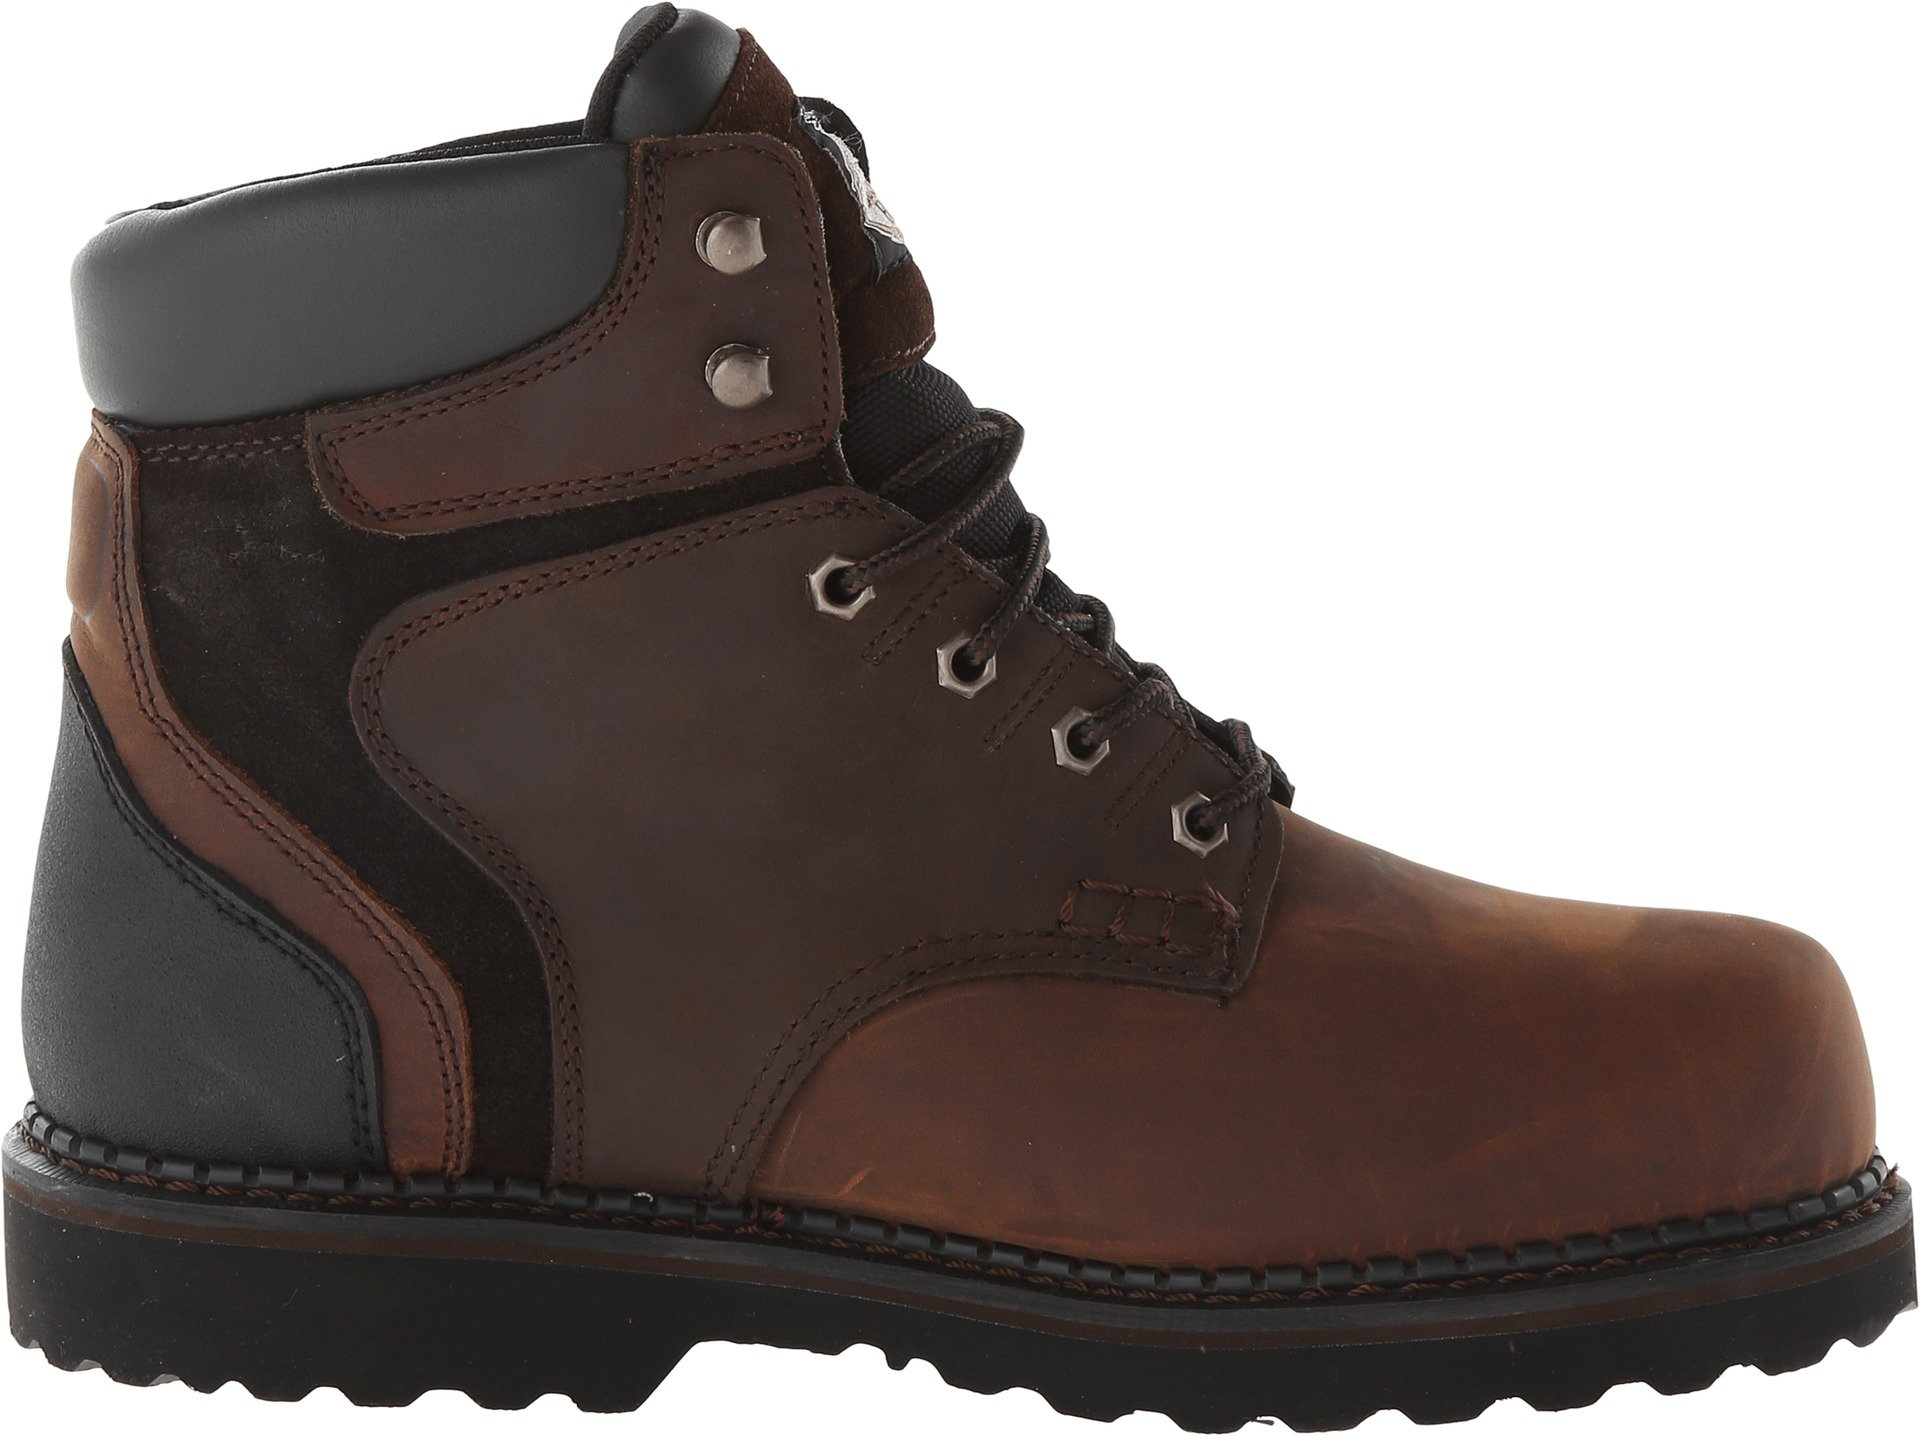 Georgia Boot Men's Brookville 6 Inch Work Shoe, Dark Brown, 10 M US by Georgia (Image #3)